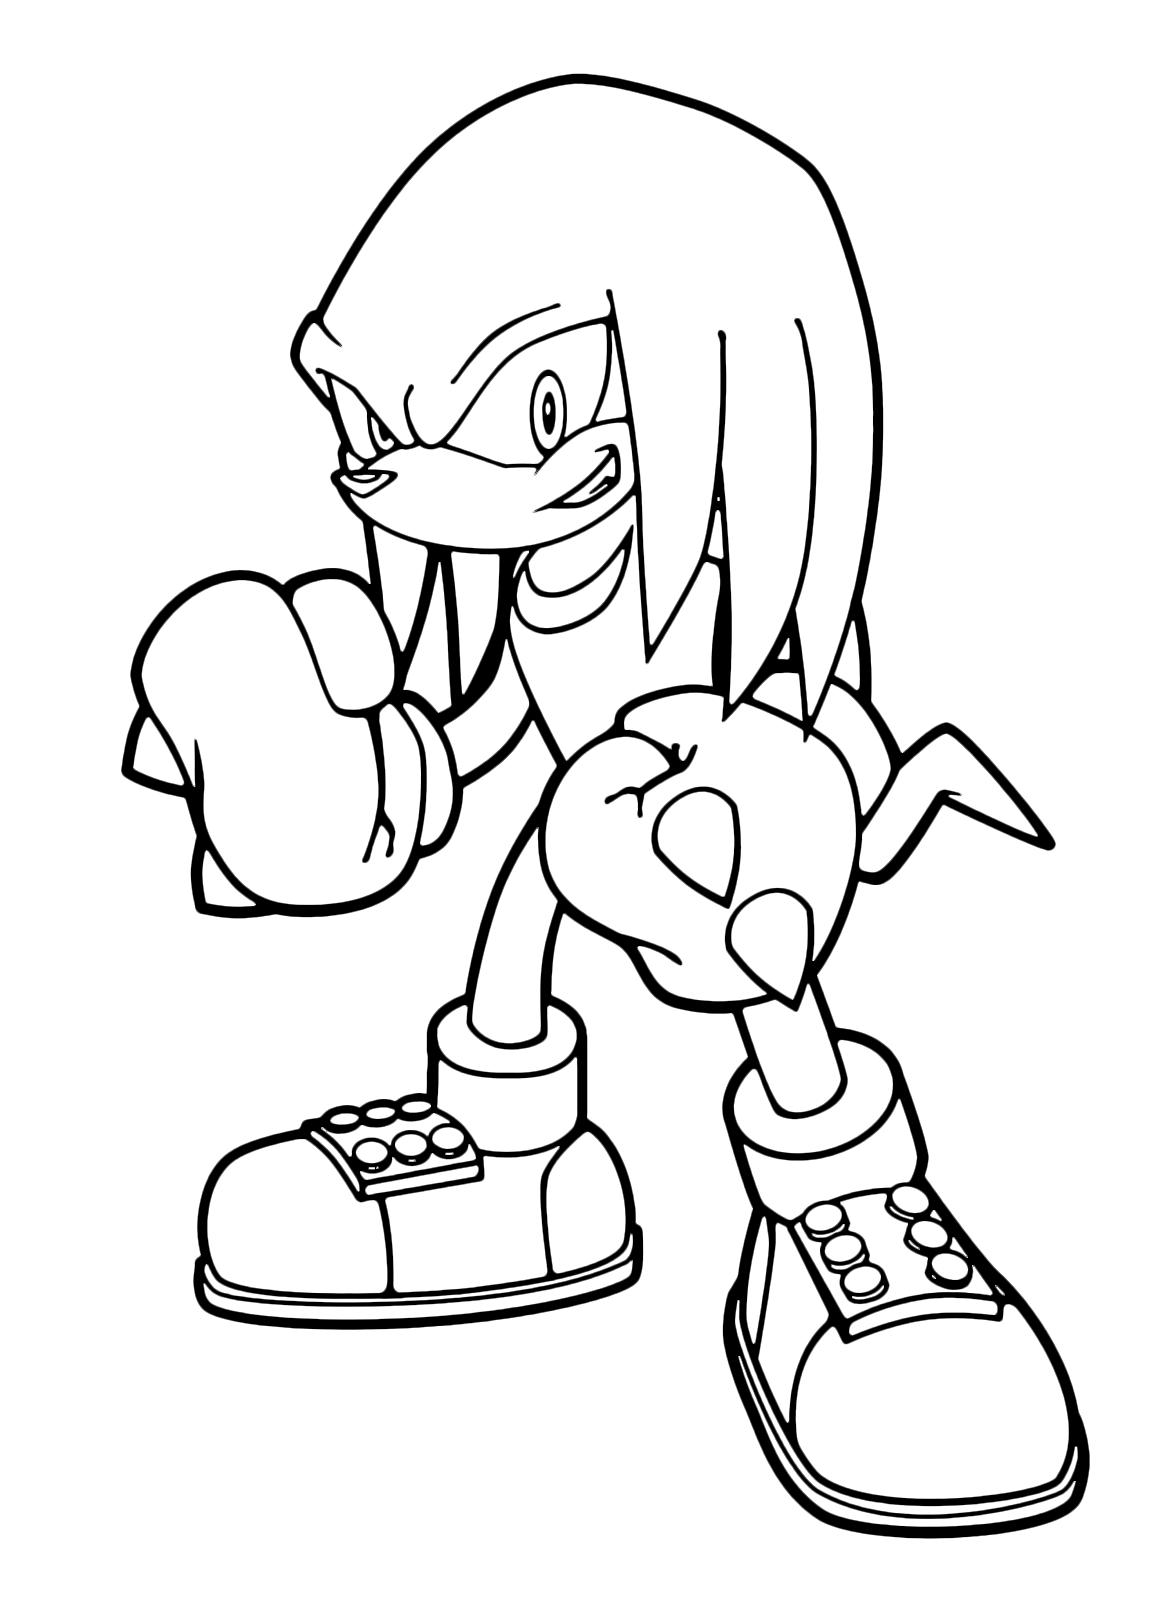 Knuckles The Echidna Drawing at GetDrawings | Free download